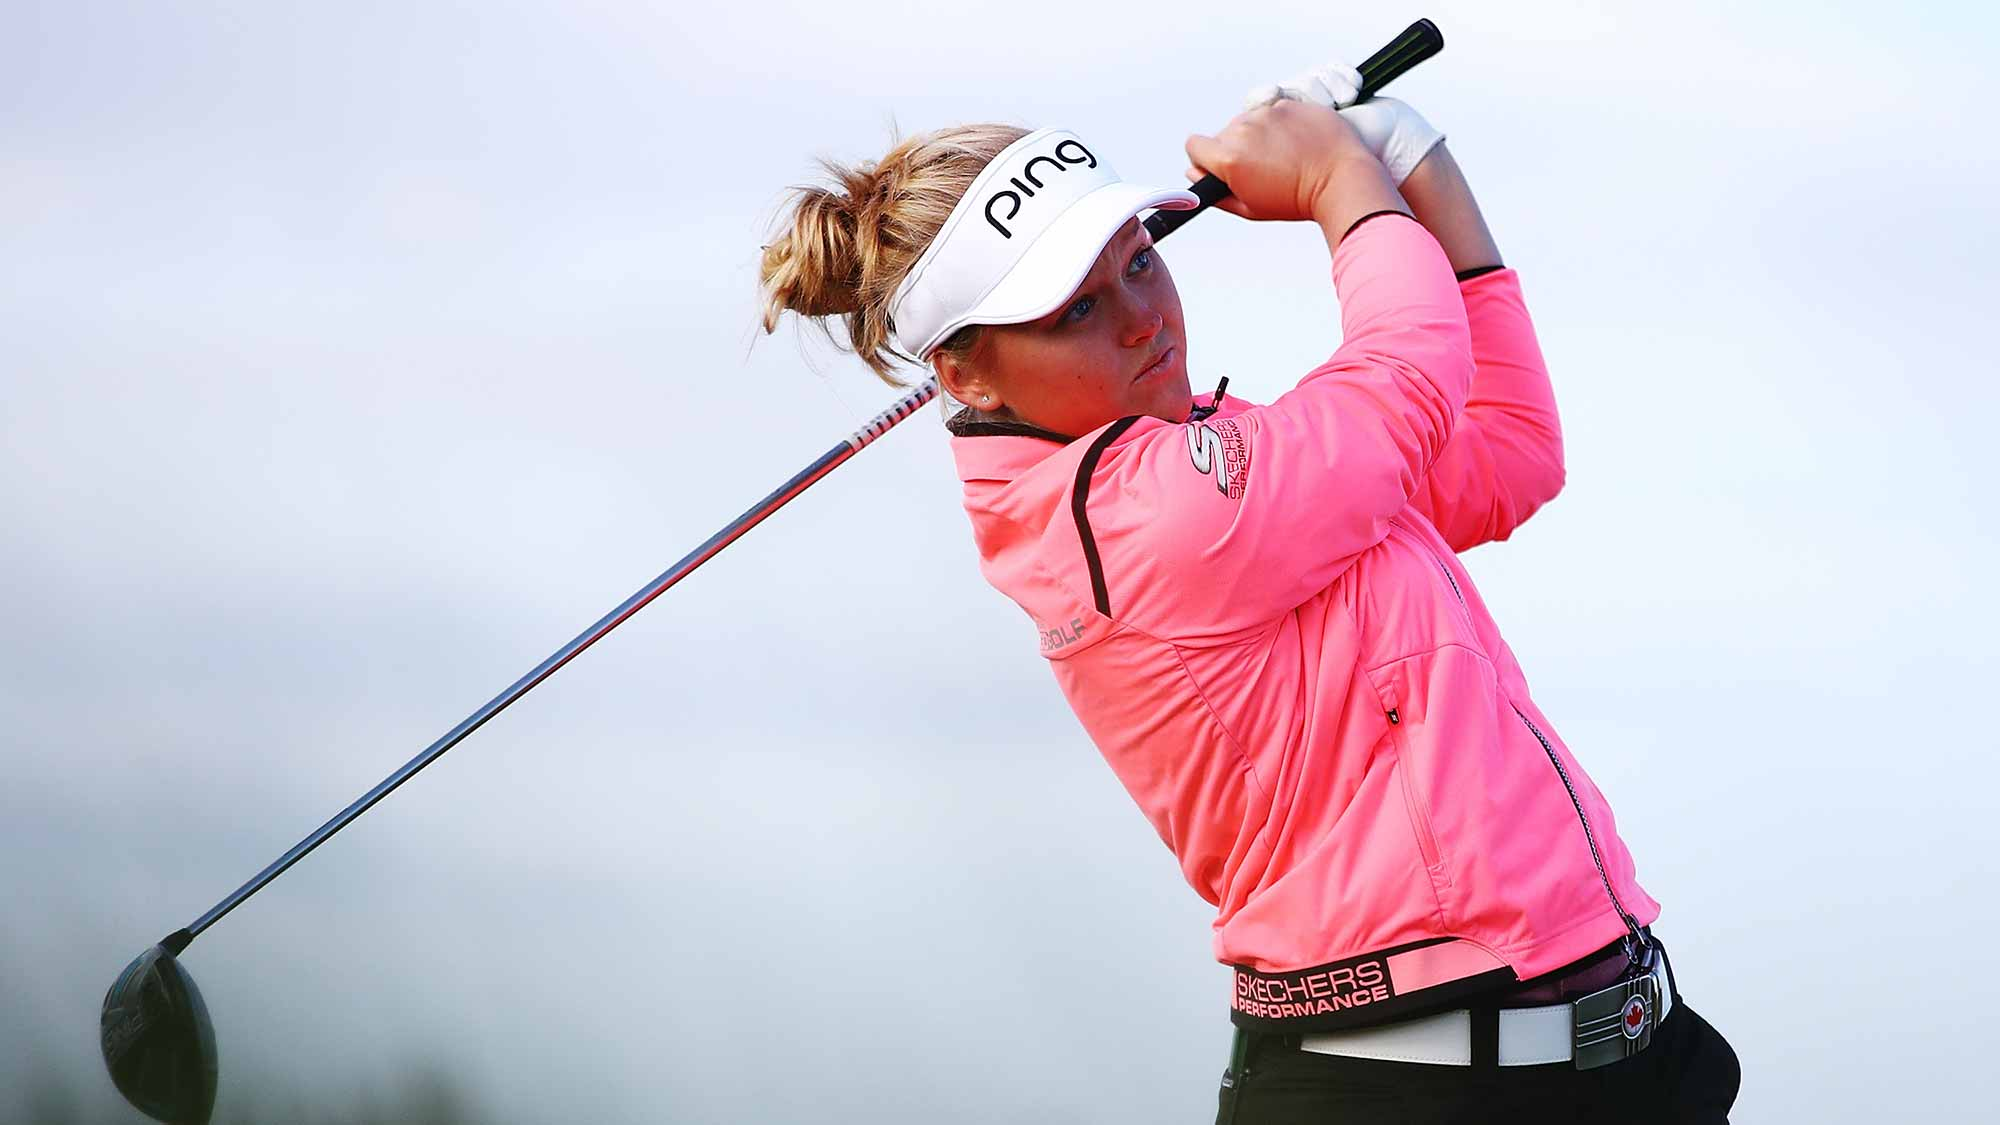 Brooke Henderson of Canada tees off during day one of the McKayson New Zealand Women's Open at Windross Farm